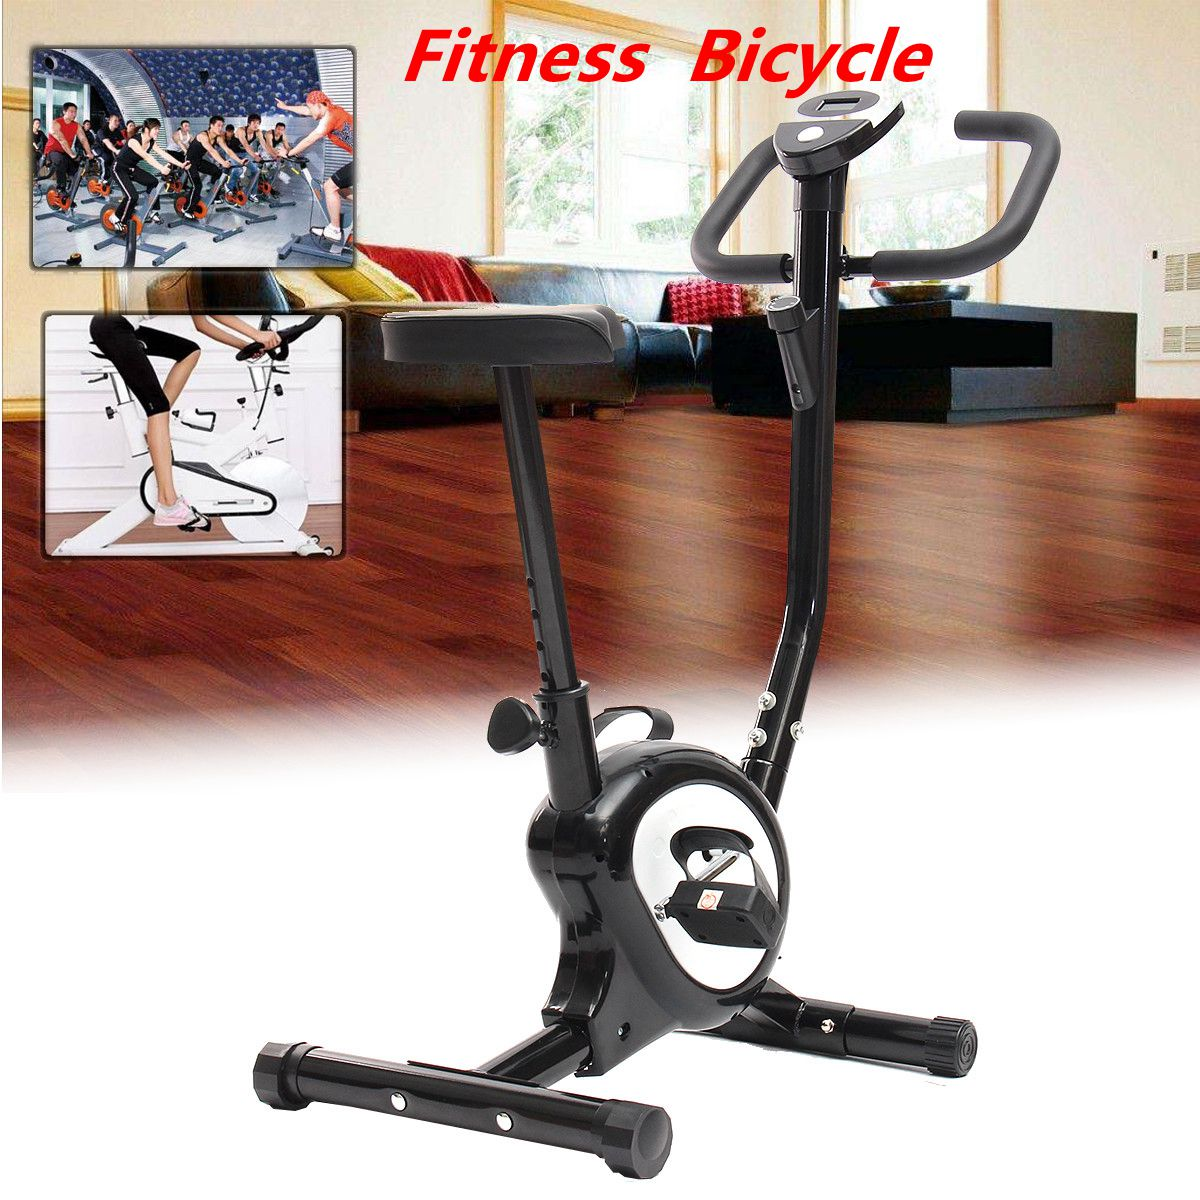 Exercise Spin Bike Home Gym Bicycle Cycling Cardio Fitness Training Workout Bike lose weight fitness equipment load Indoor fitness bike indoor cycling exercise equipment with the electronic display screen the indoor cycling ultra quiet bicycle trainer